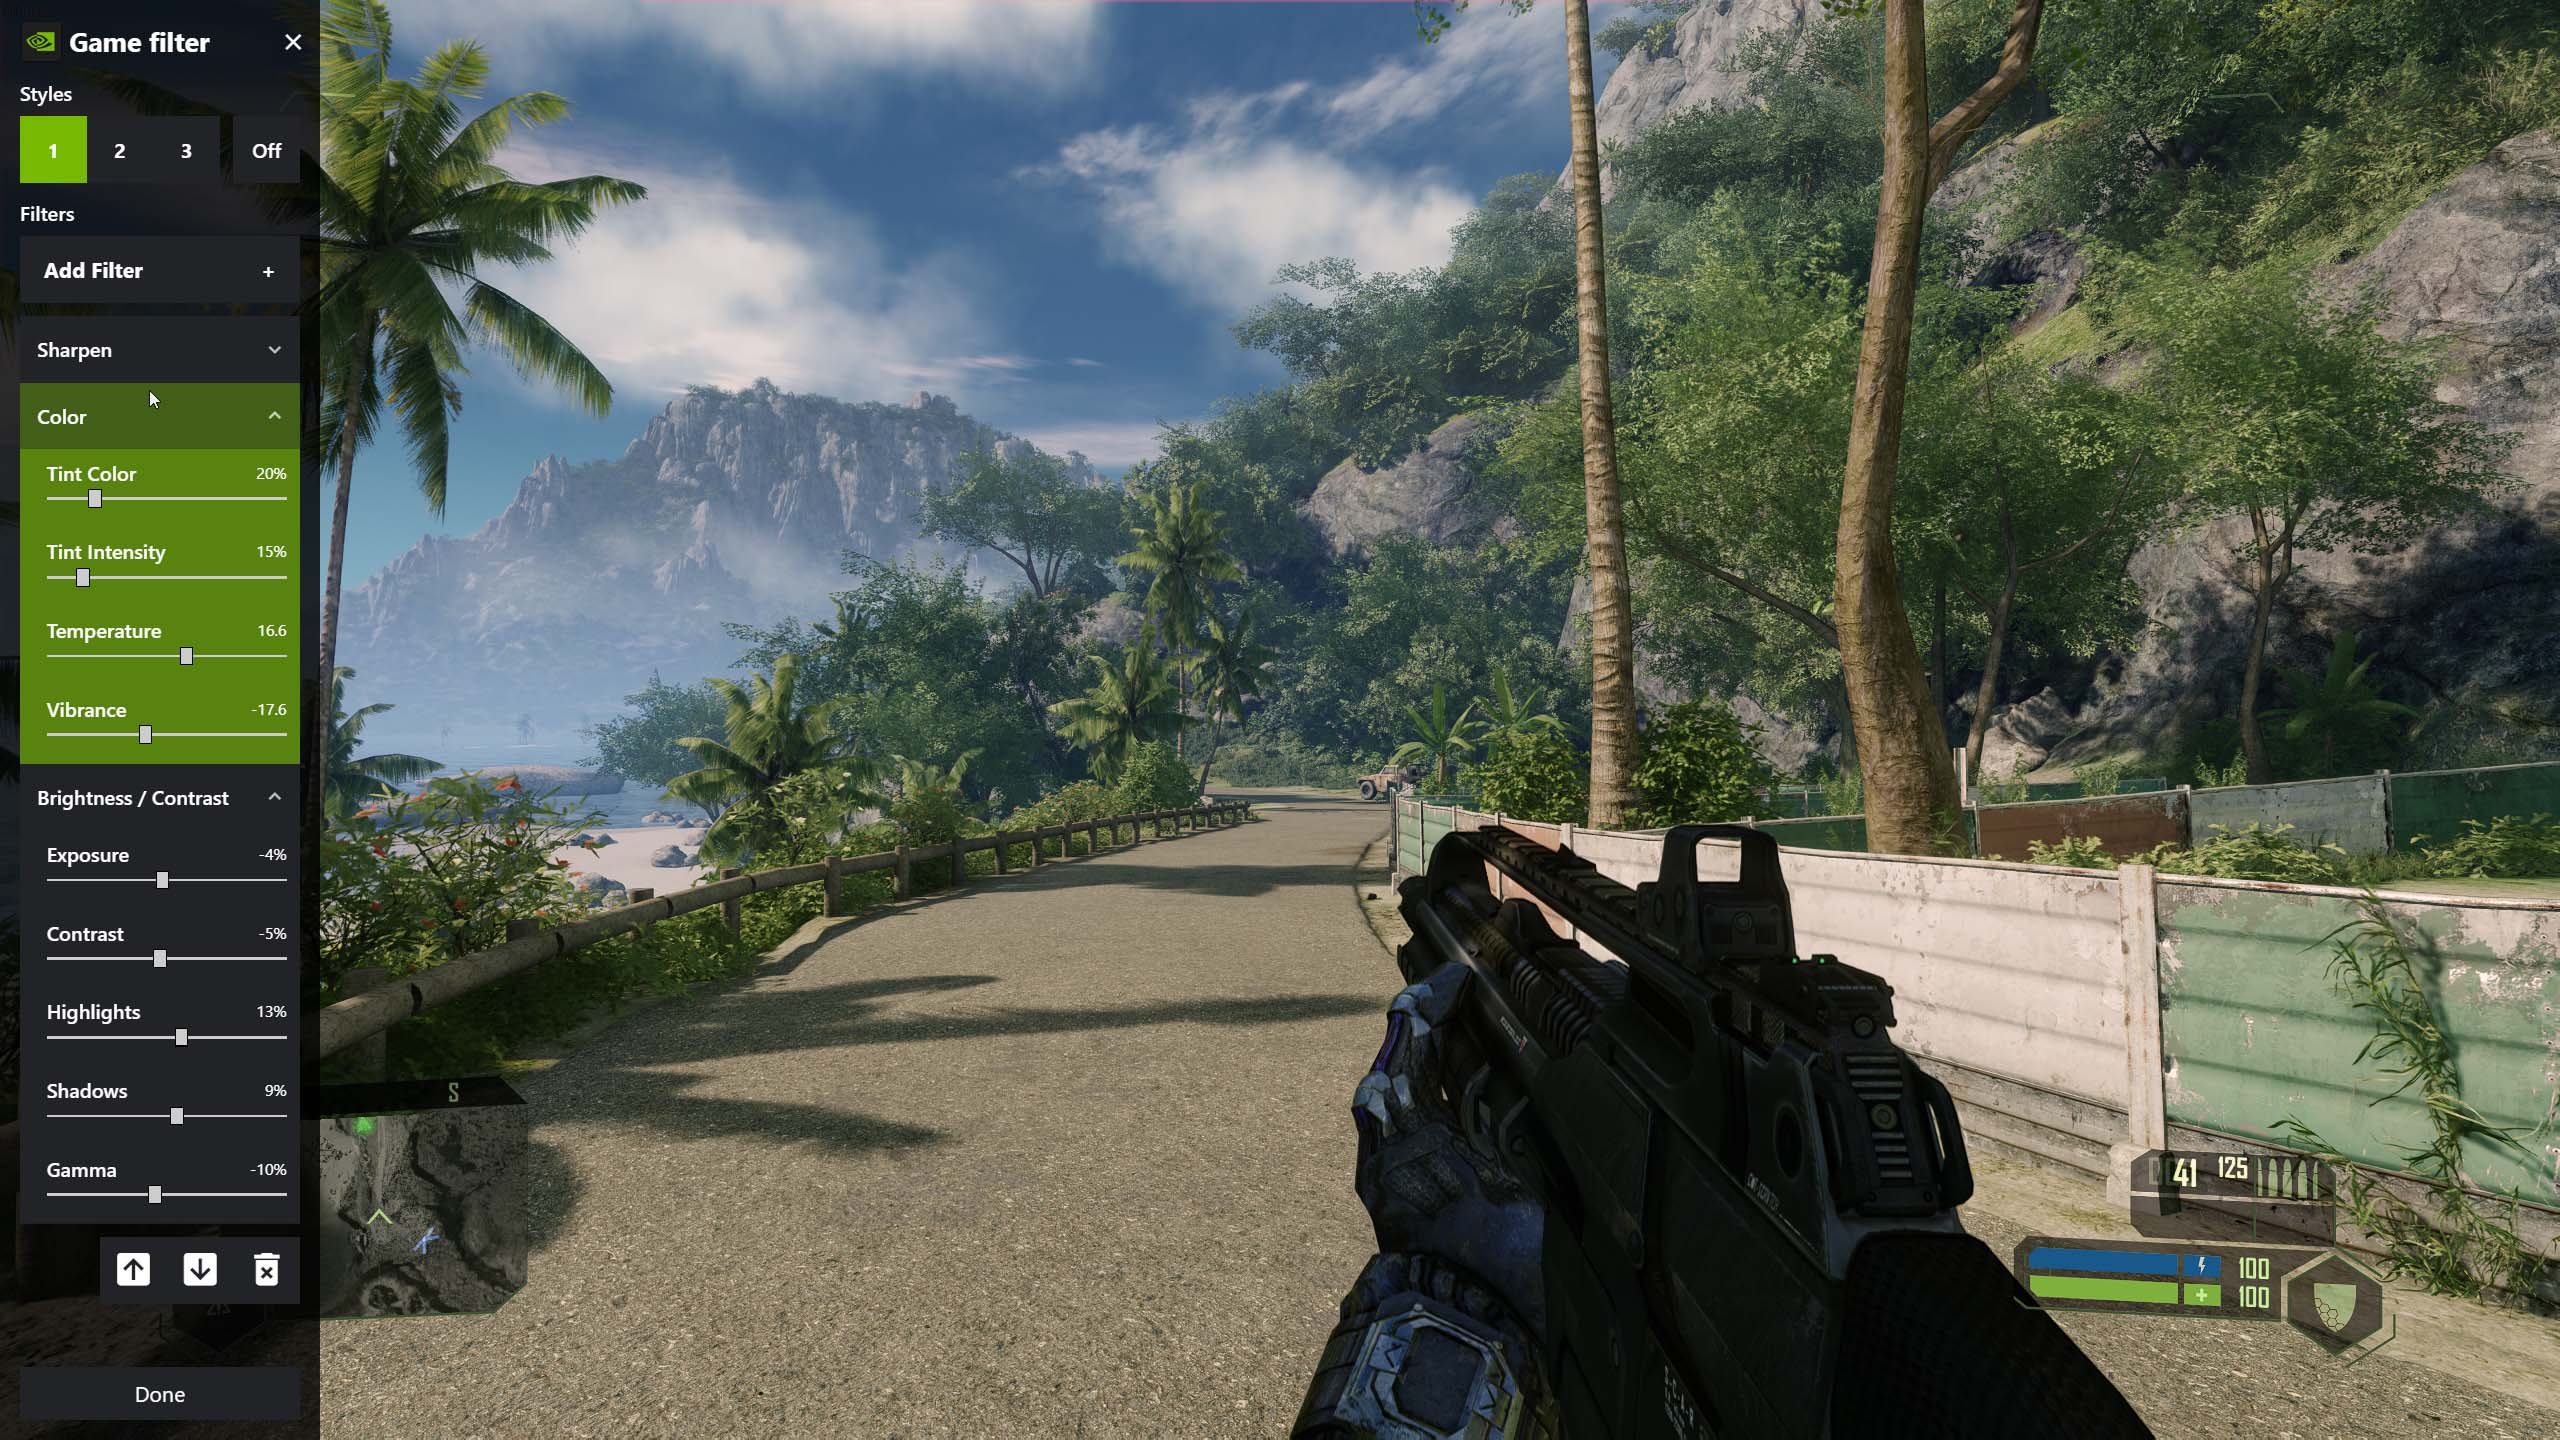 Crysis Remastered - How to Improve Image Quality on Geforce Experience in Game - Color settings - 89E175B